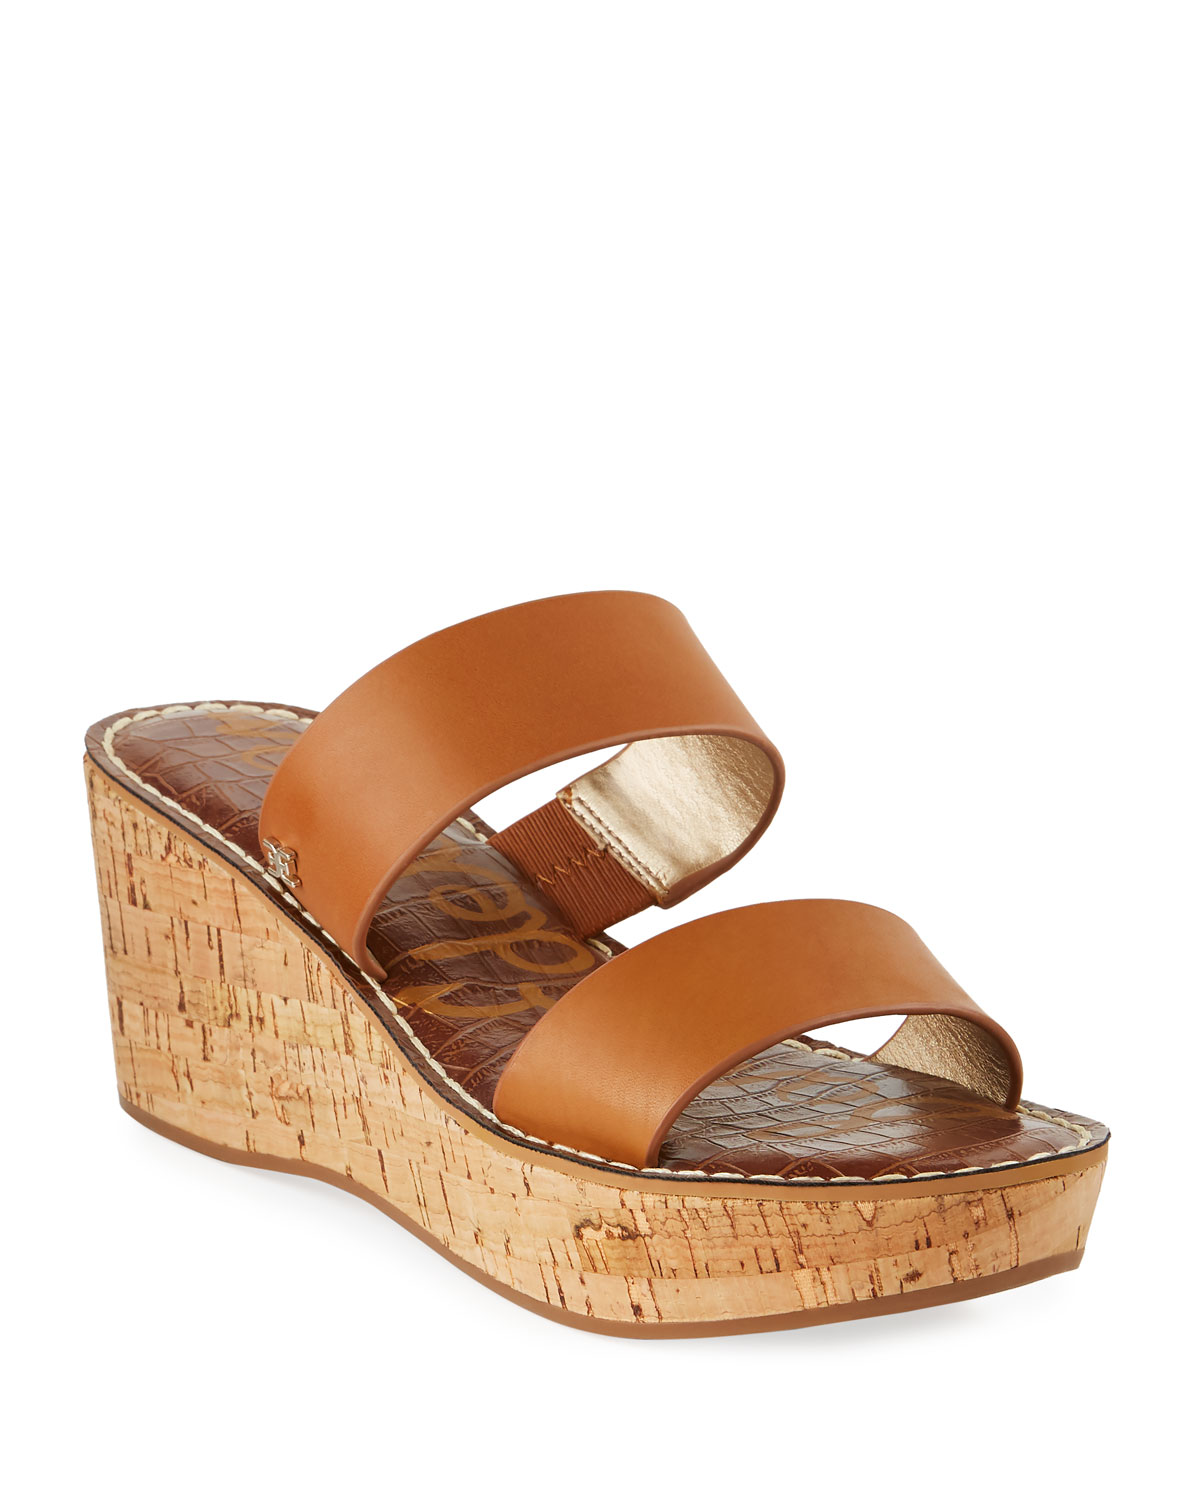 Rydell Cork-Wedge Leather Sandals, Brown